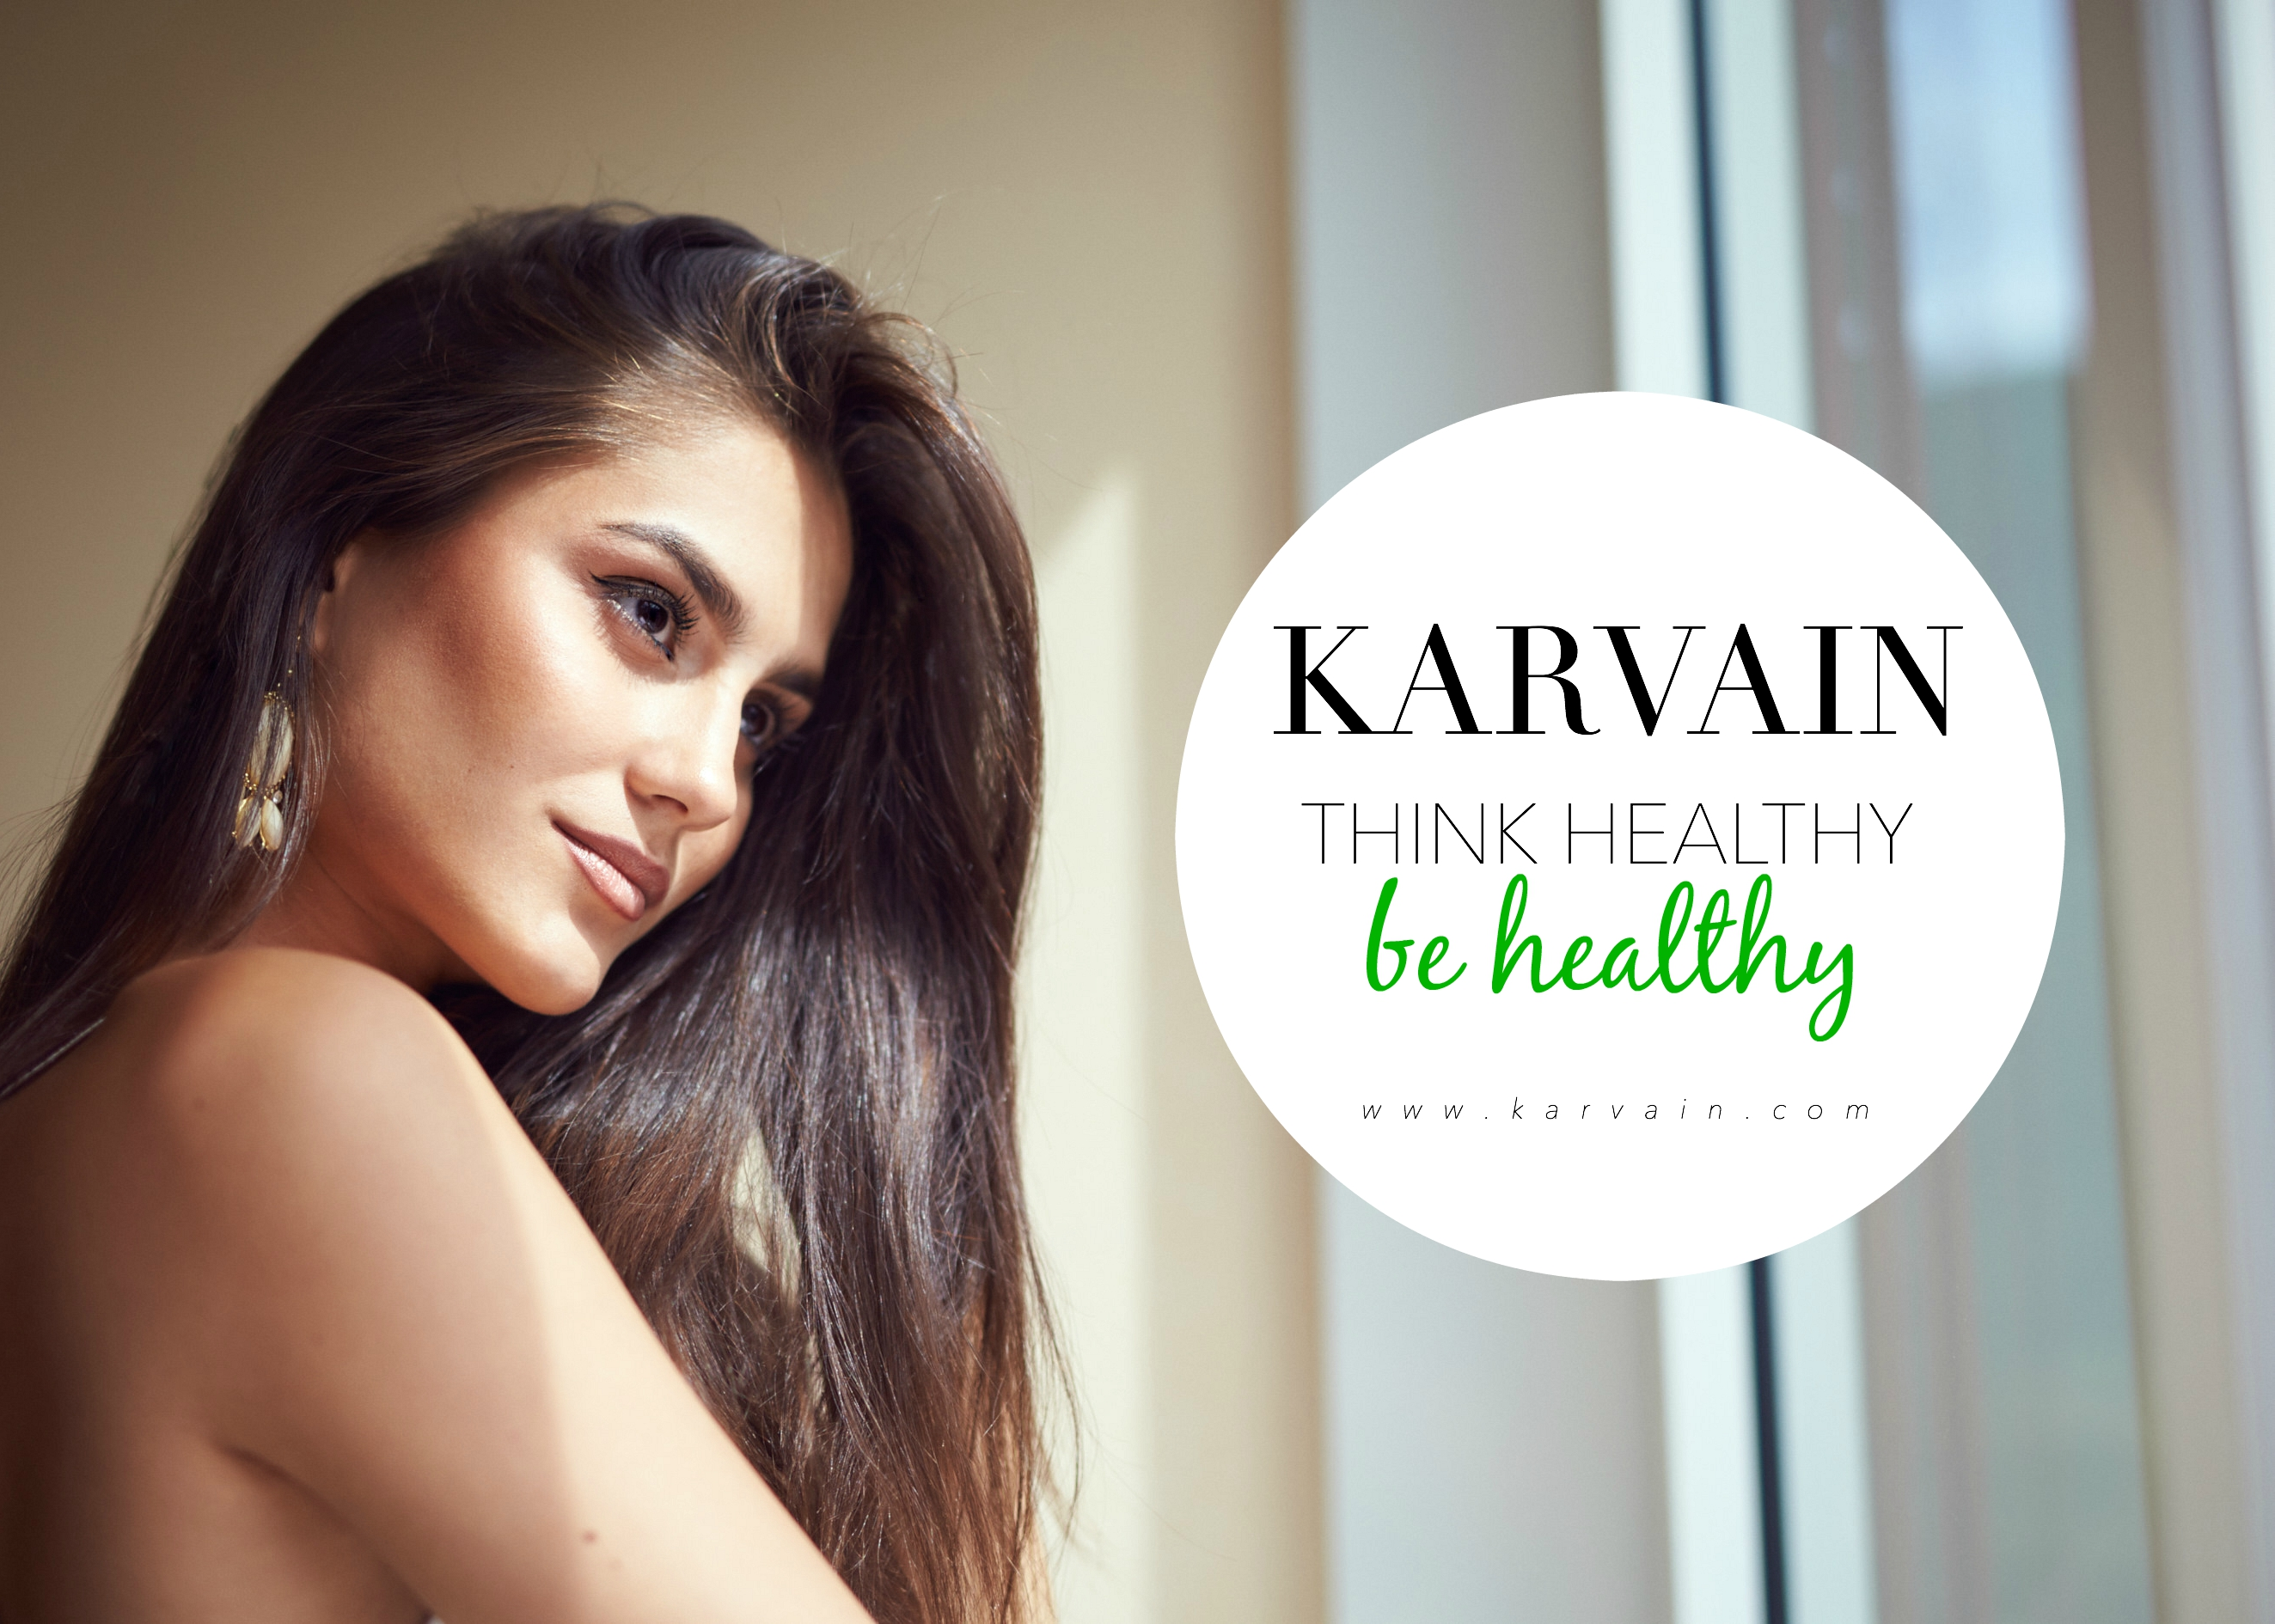 KARVAIN THINK HEALTHY